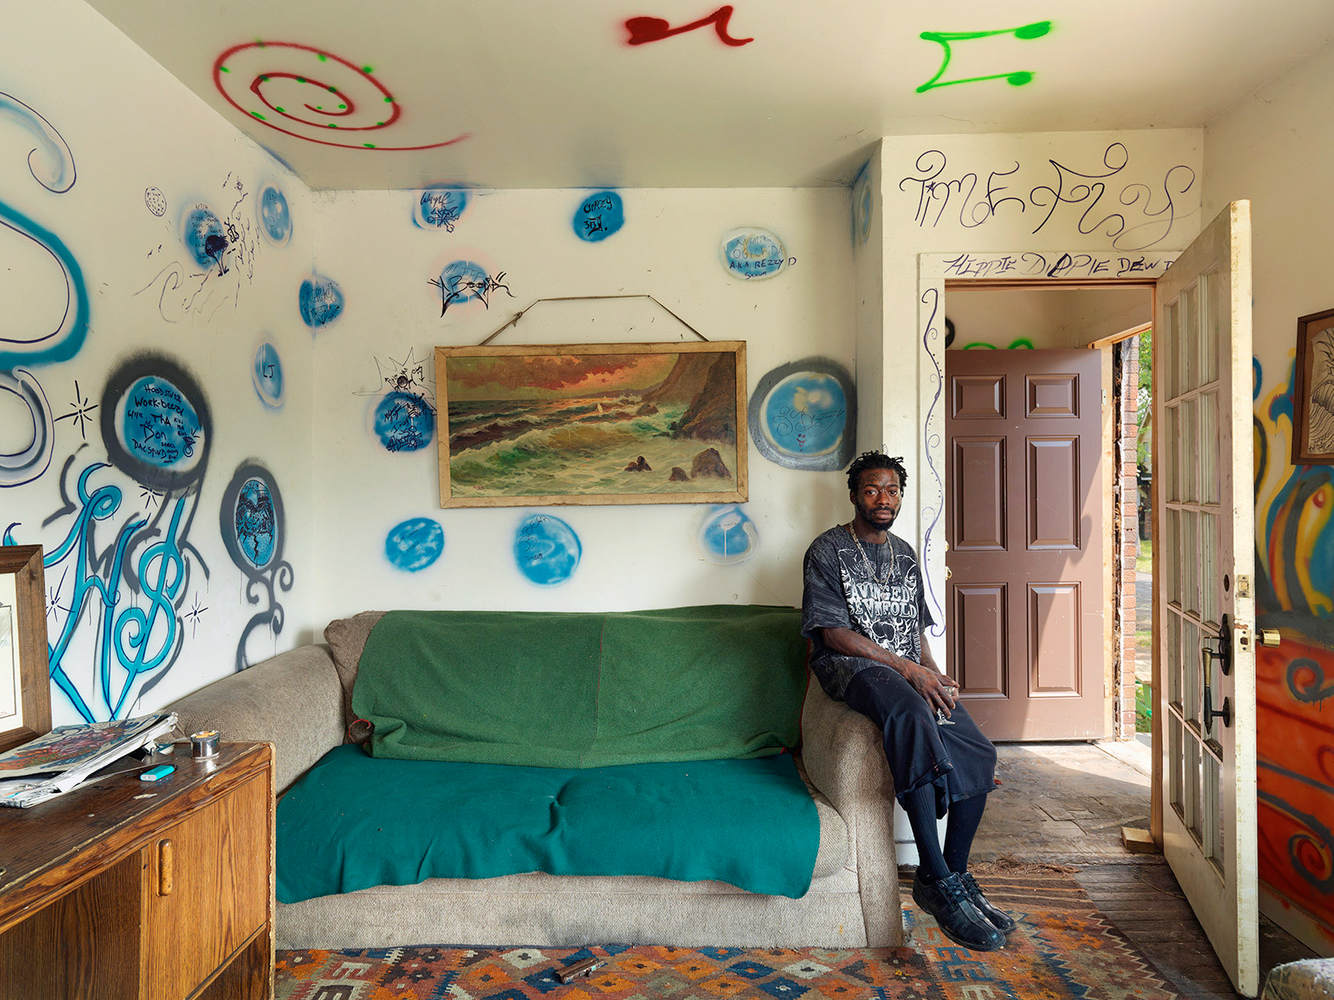 Beezy at Home, Goldengate Street Resident, Detroit 2012